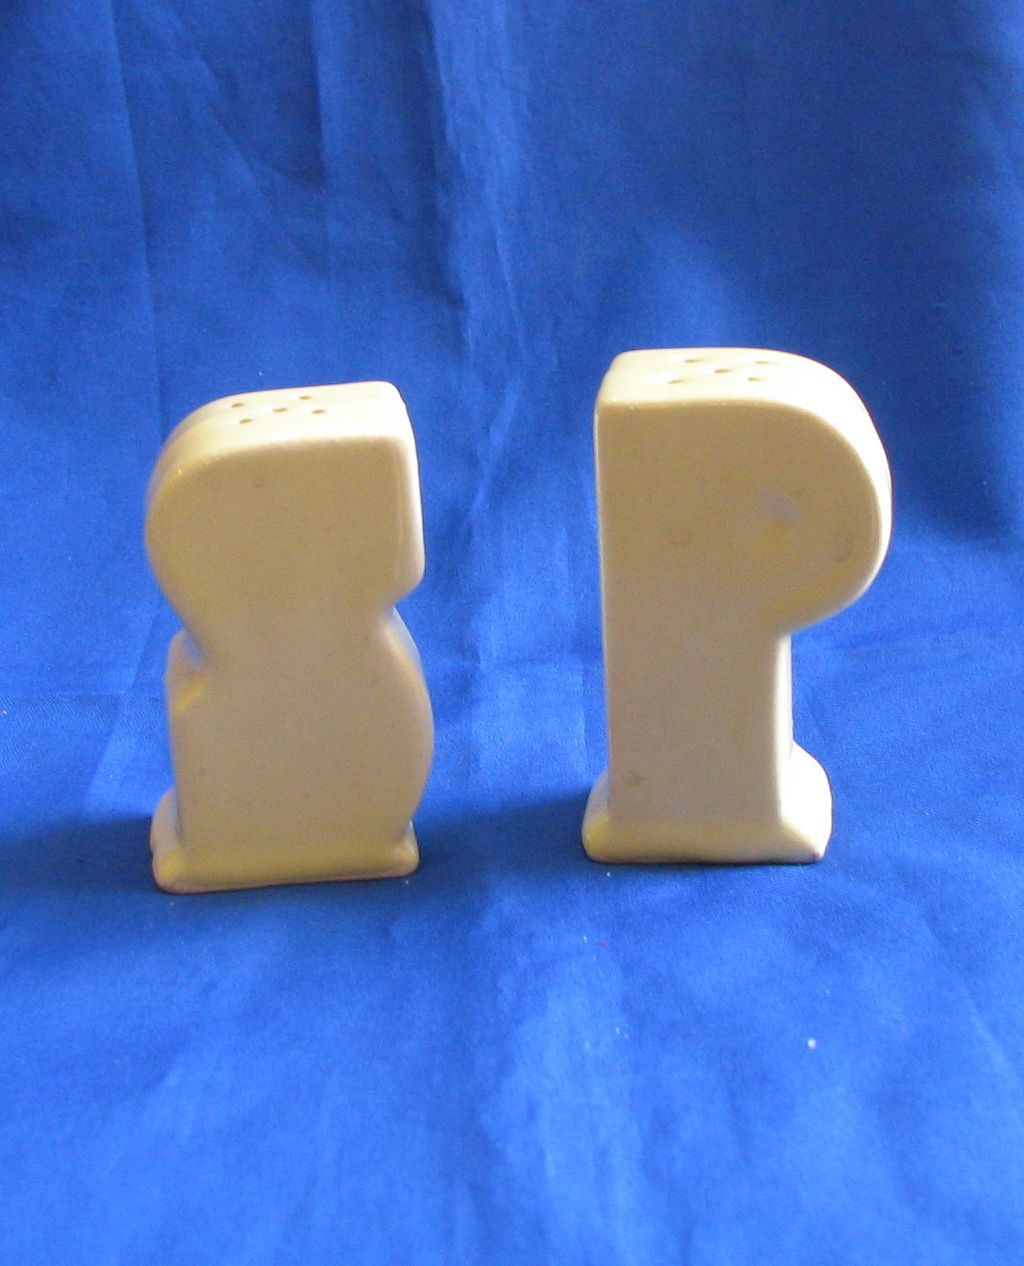 Ceramic S and P Salt and Pepper Shakers